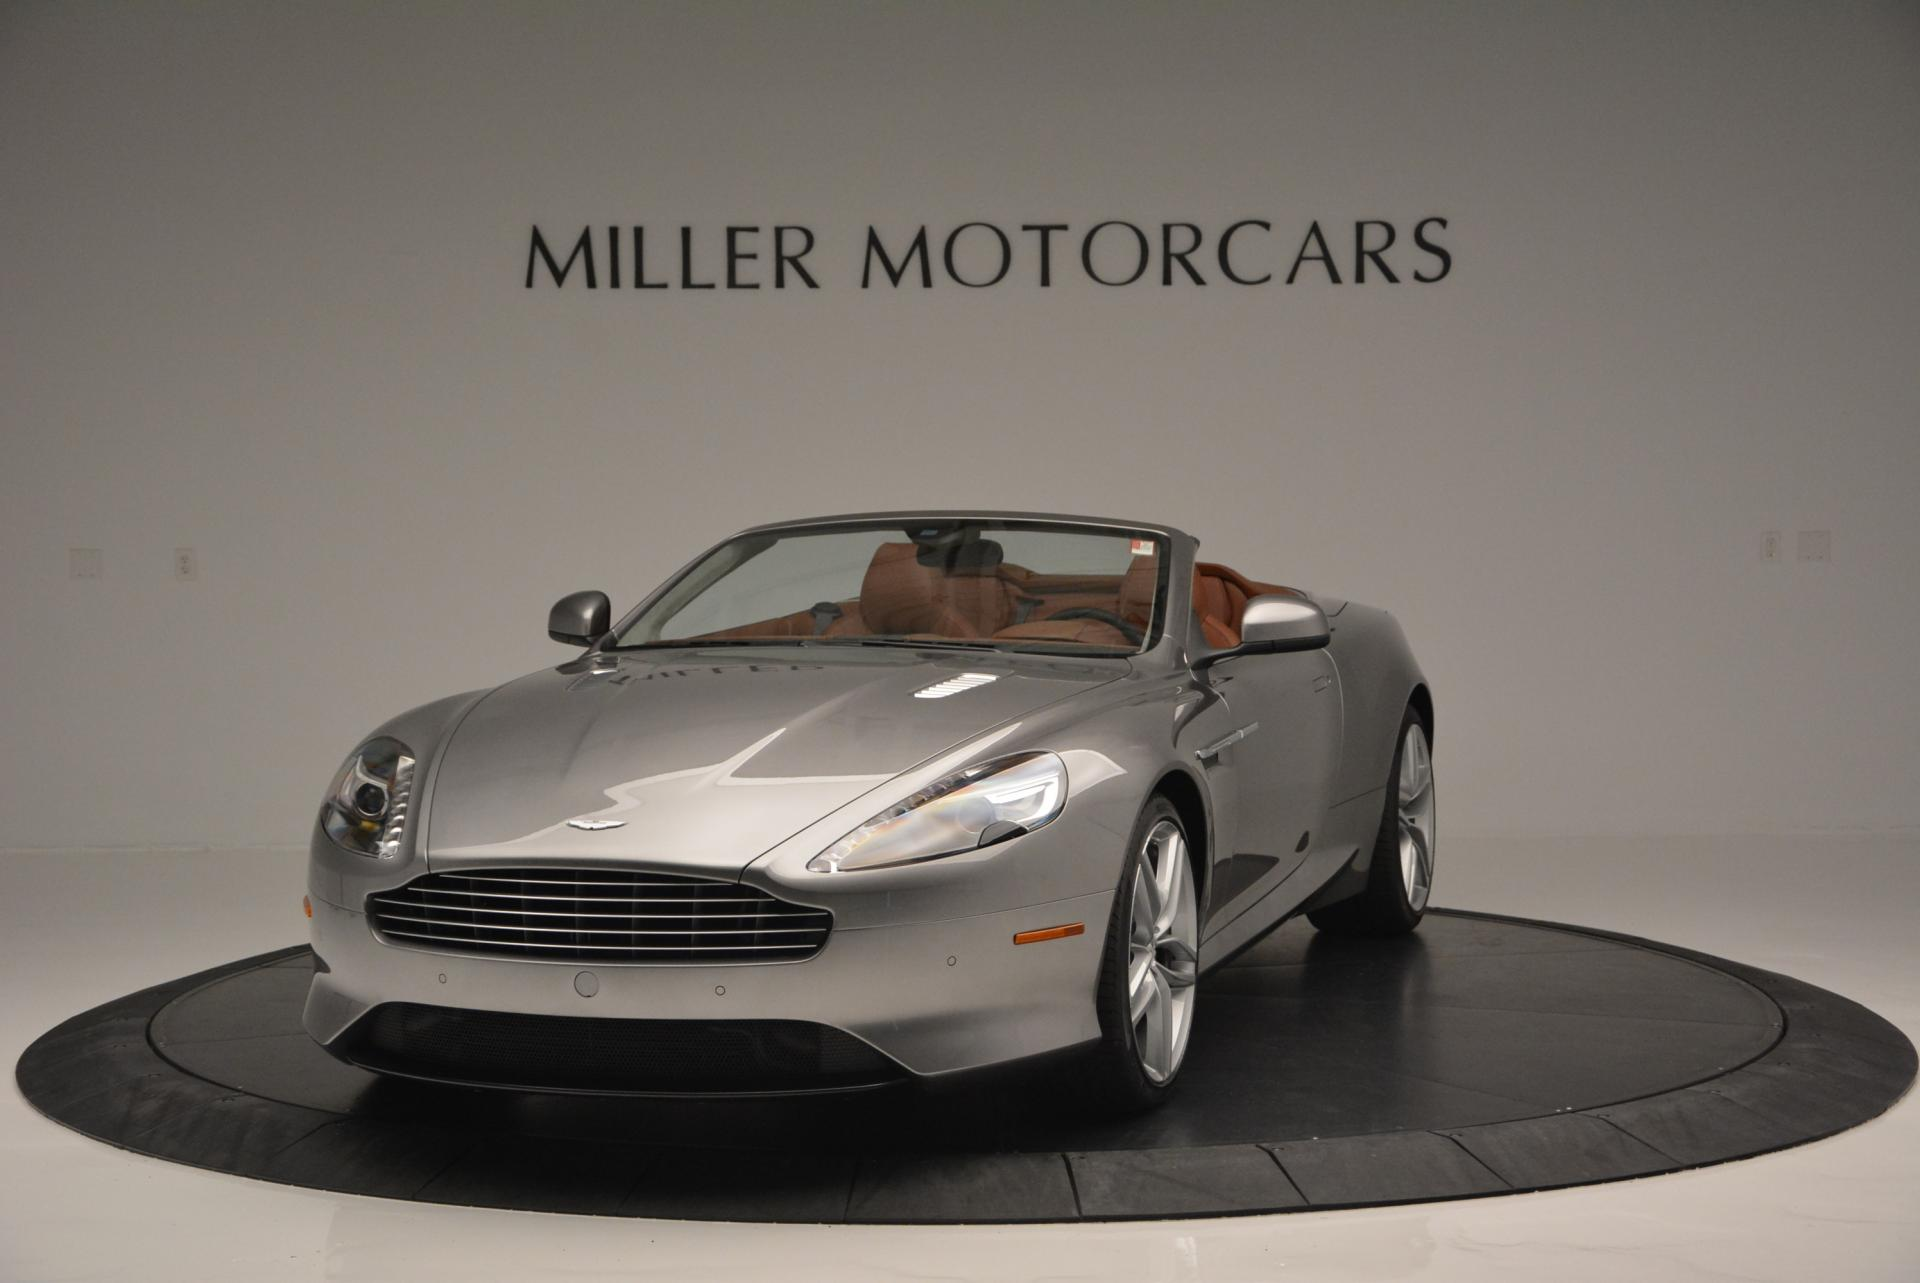 New 2016 Aston Martin DB9 GT Volante For Sale In Greenwich, CT 91_main